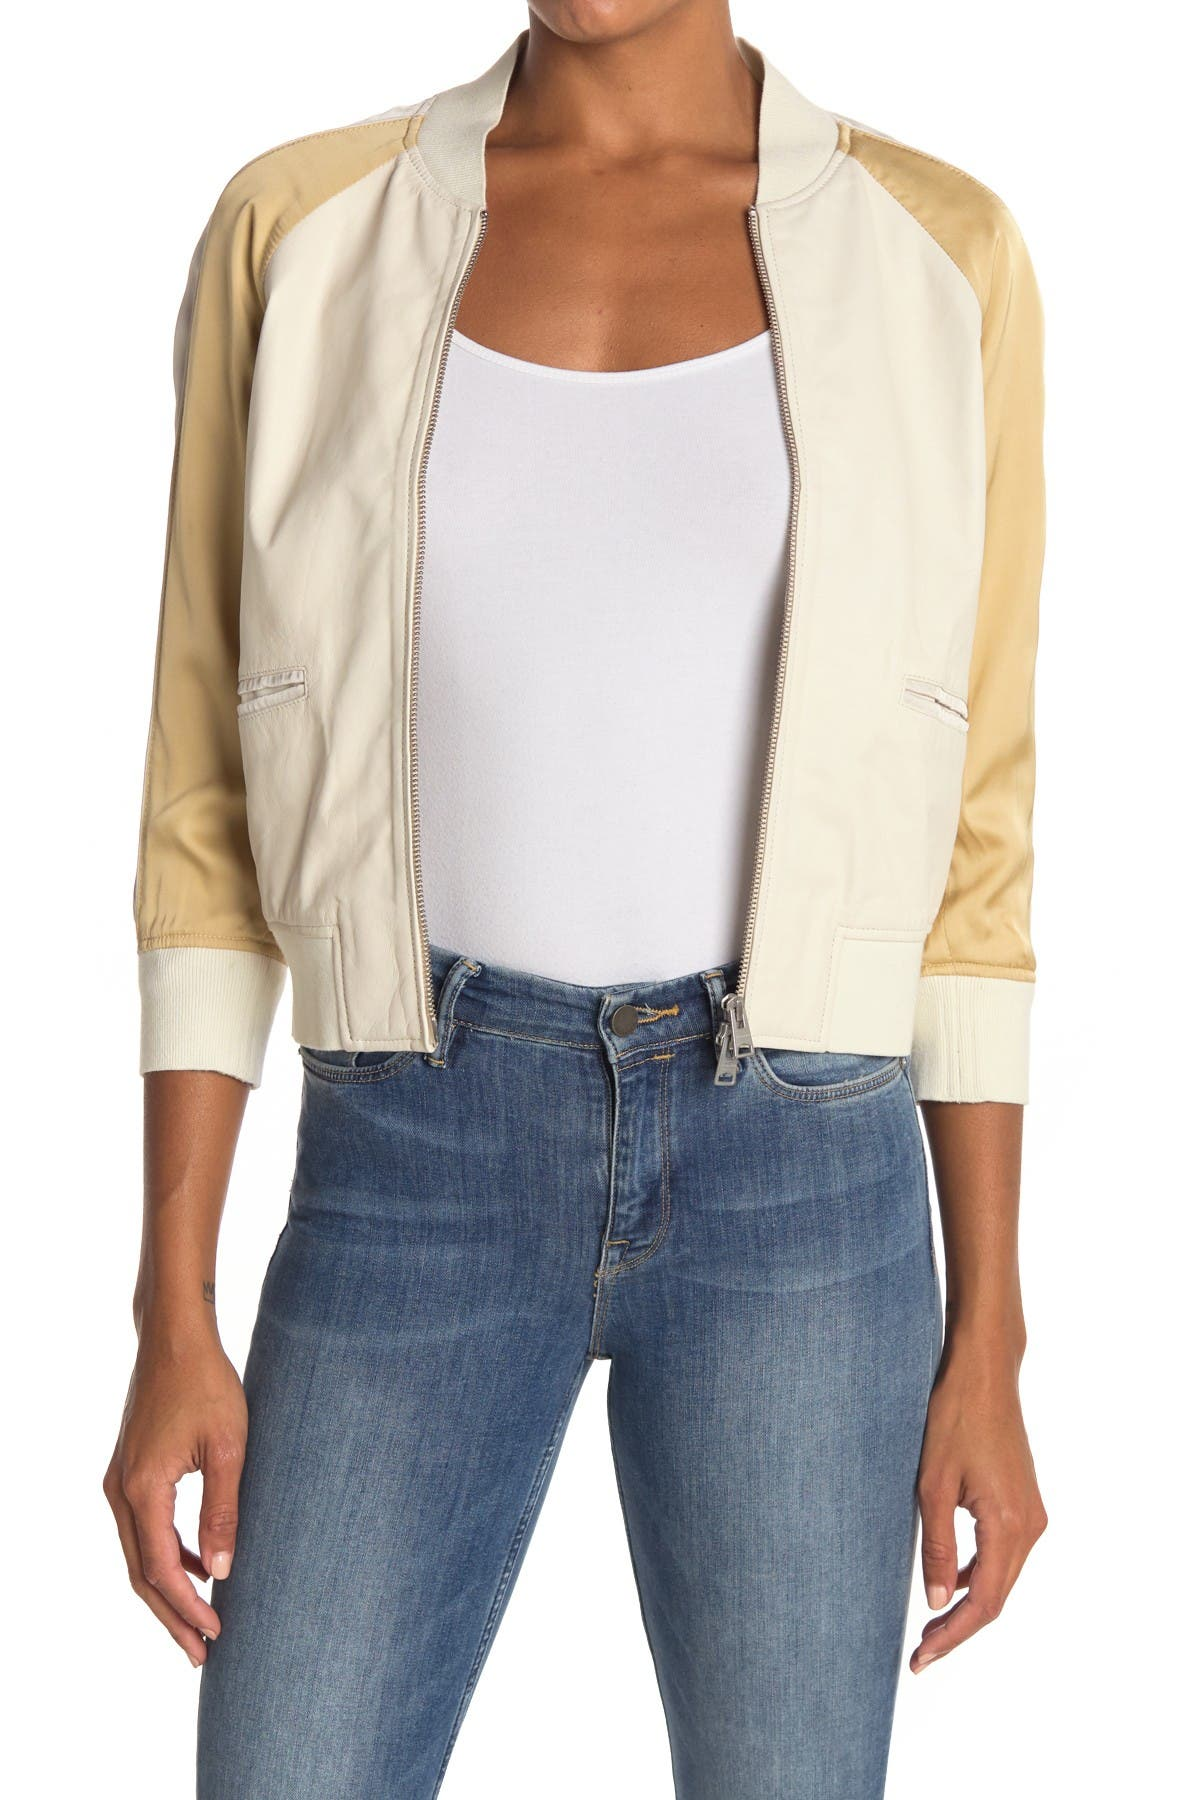 Image of ALLSAINTS Varley 3/4 Sleeve Crop Bomber Jacket